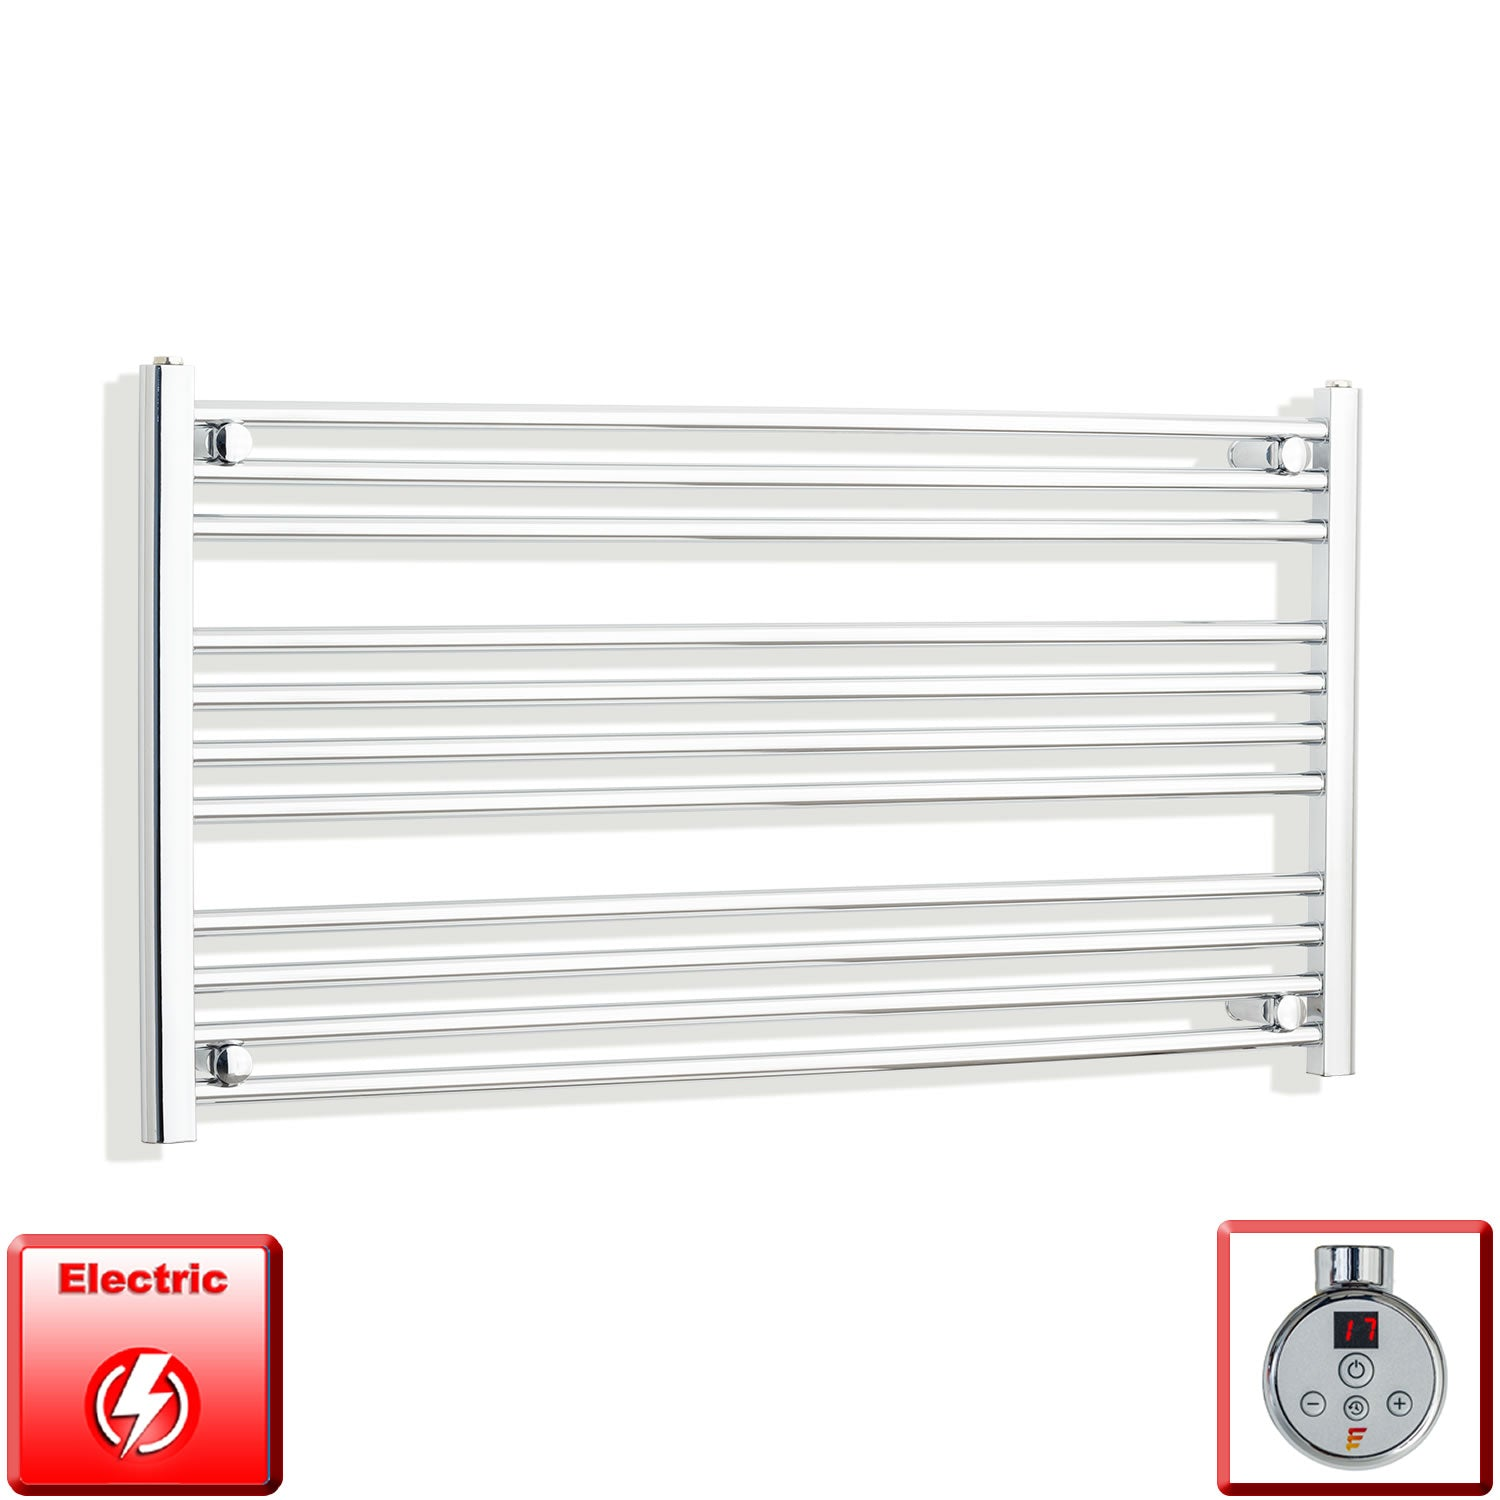 1200mm Wide 600mm High Flat Chrome Pre-Filled Electric Heated Towel Rail Radiator HTR